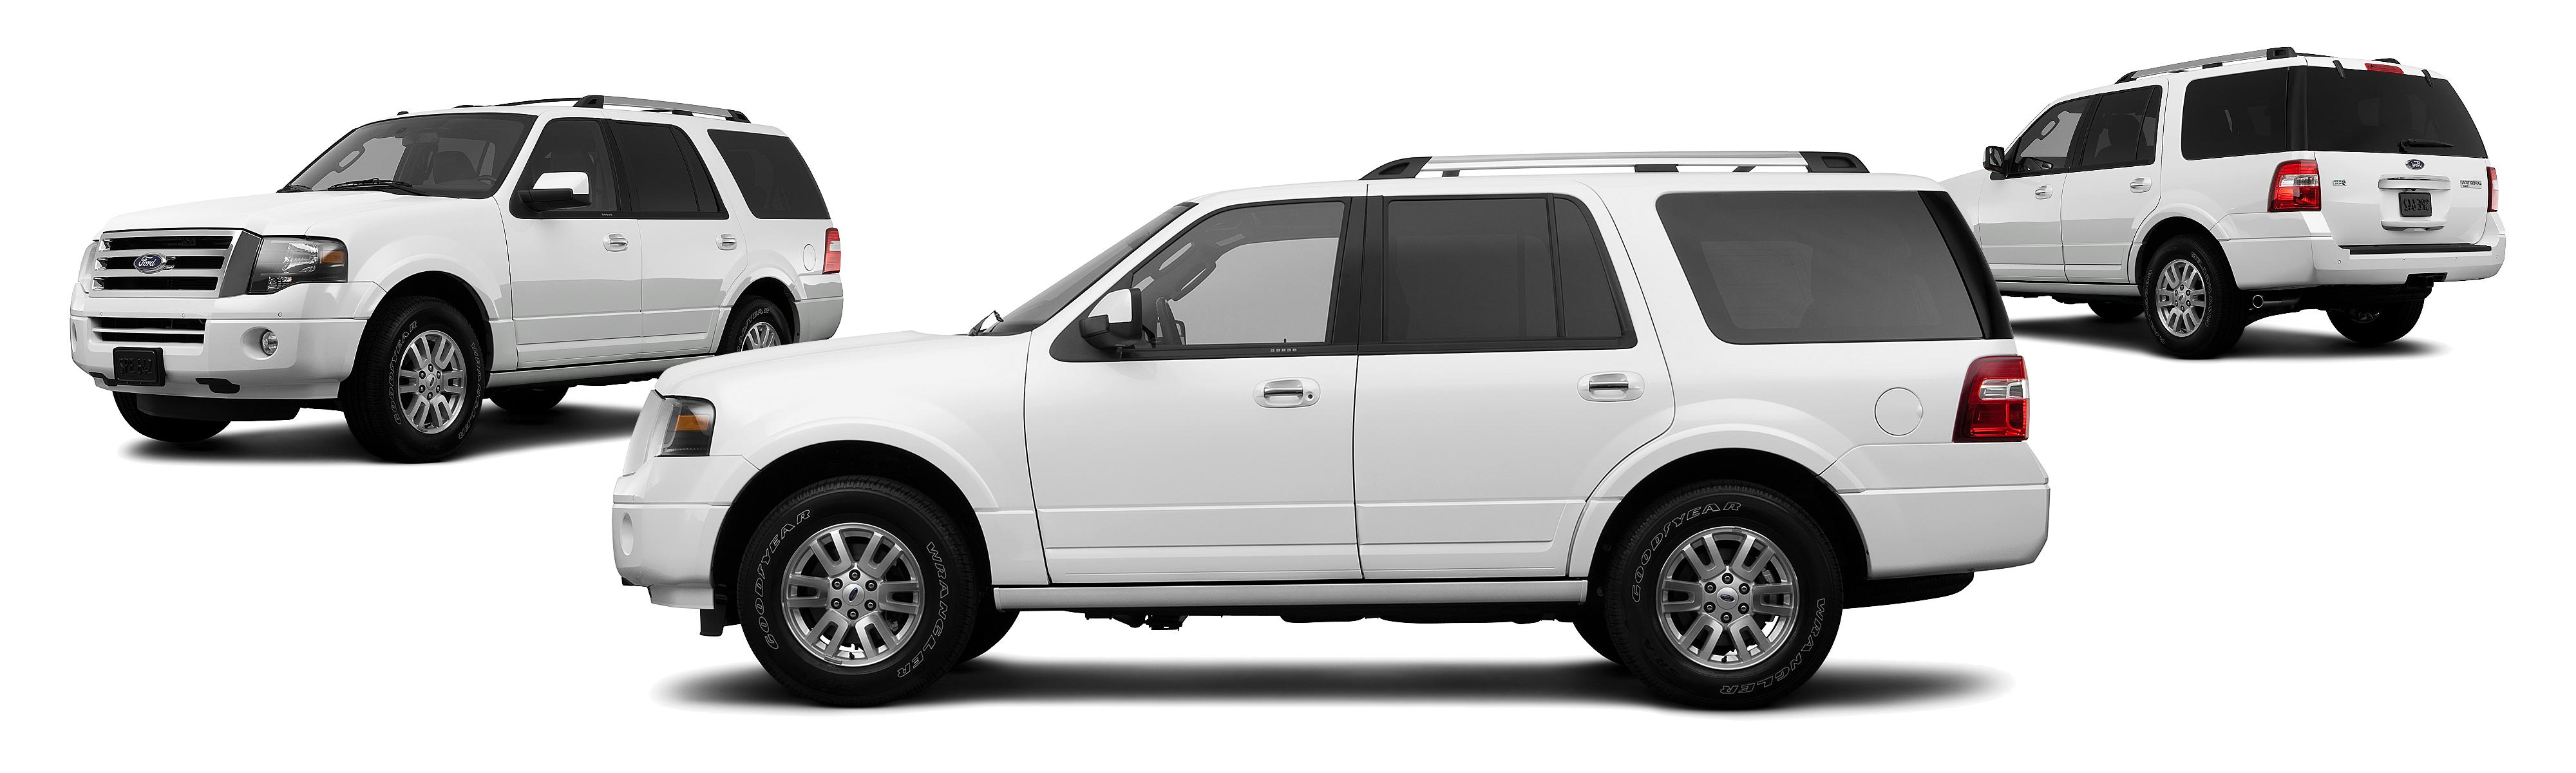 police pin vehicles el k unit ford expedition nhp pinterest